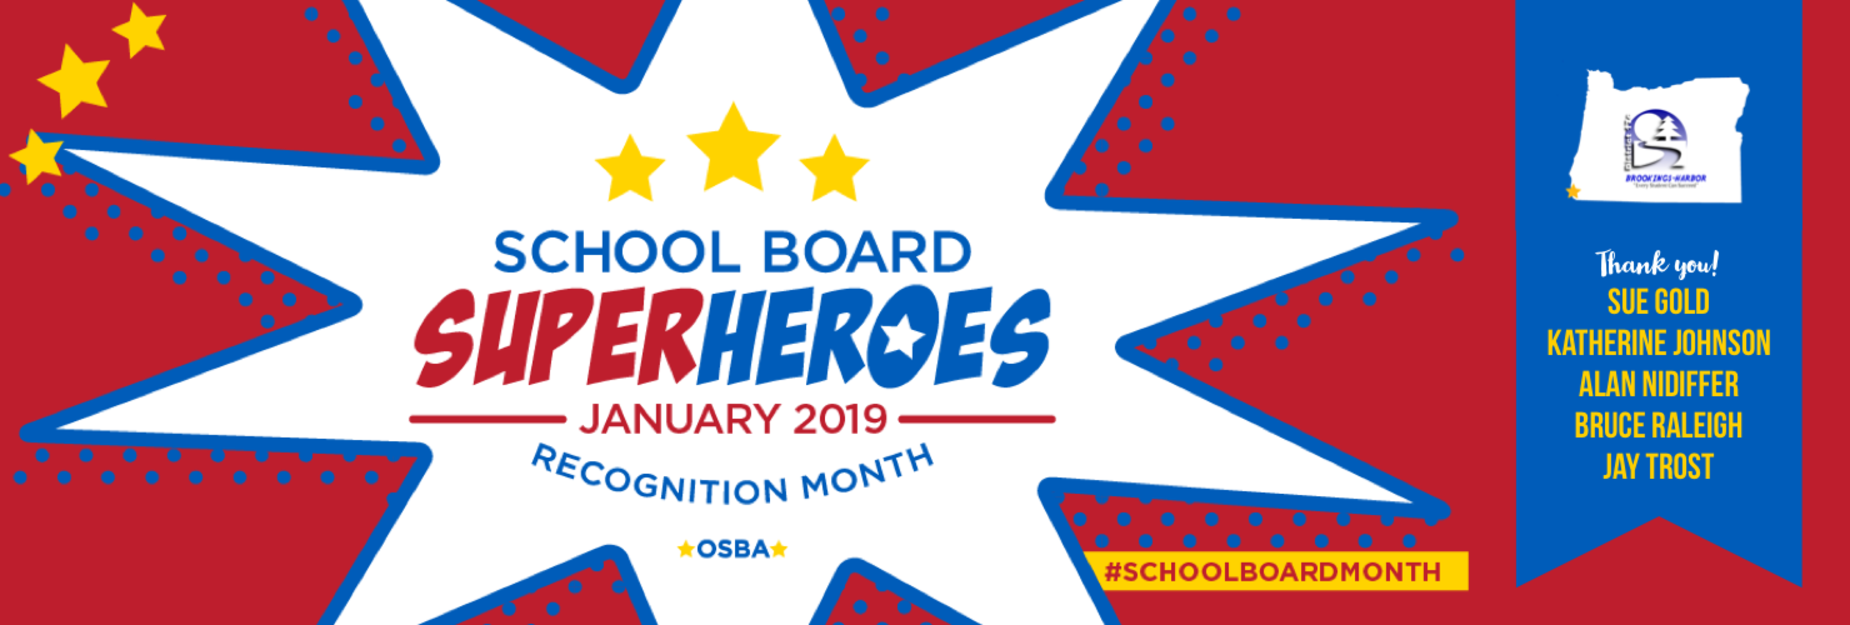 School Board Recognition Month